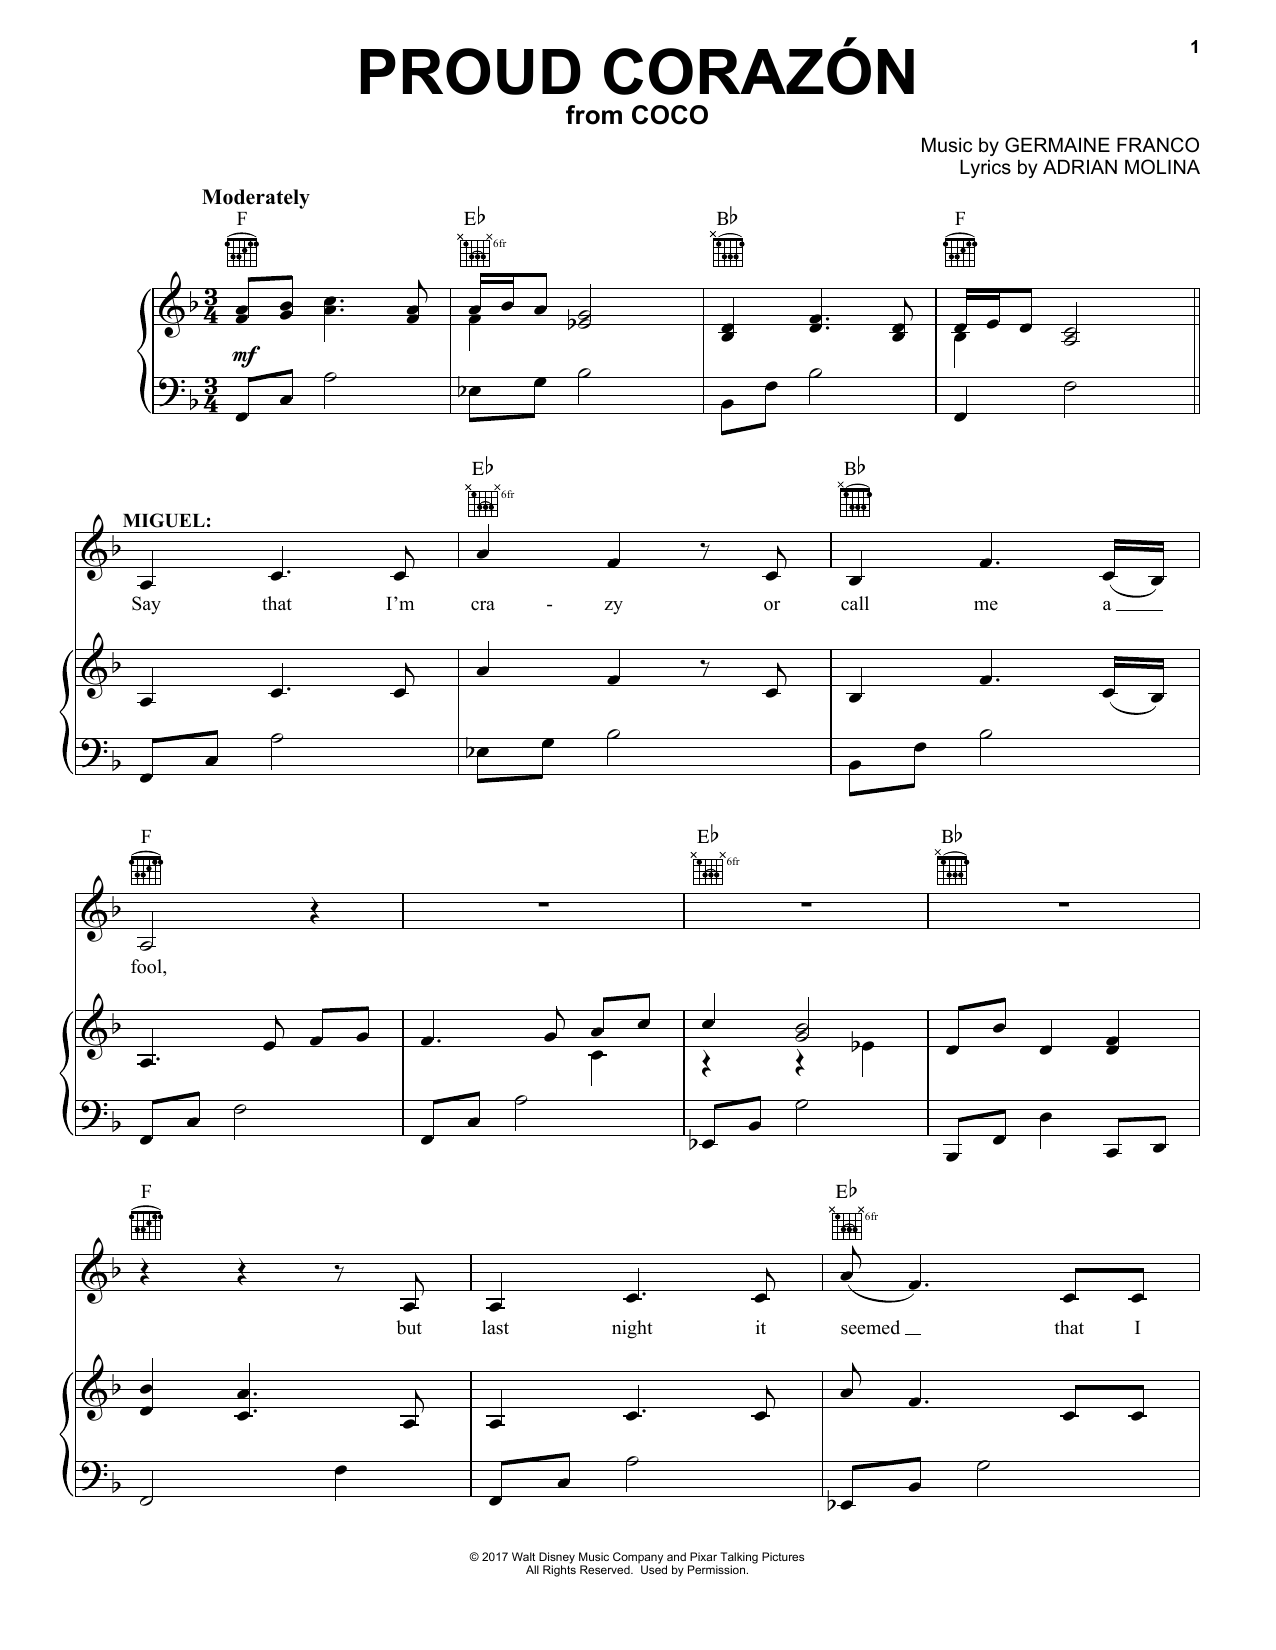 Germaine Franco & Adrian Molina Proud Corazon (from Coco) sheet music notes and chords. Download Printable PDF.